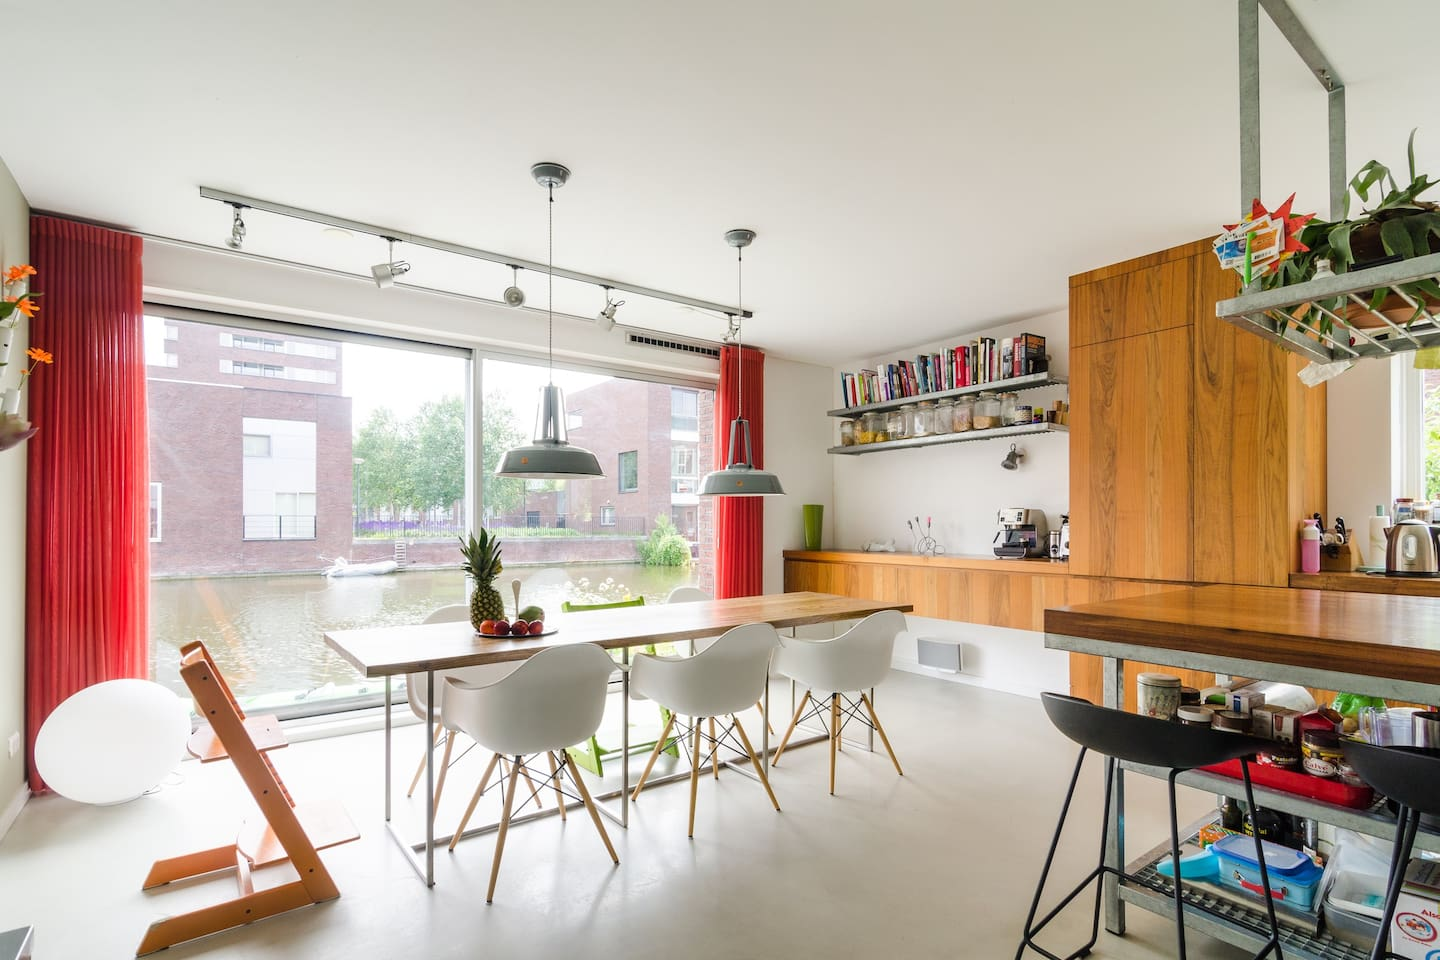 Luxery family house amsterdam canal ijburg houses for rent in